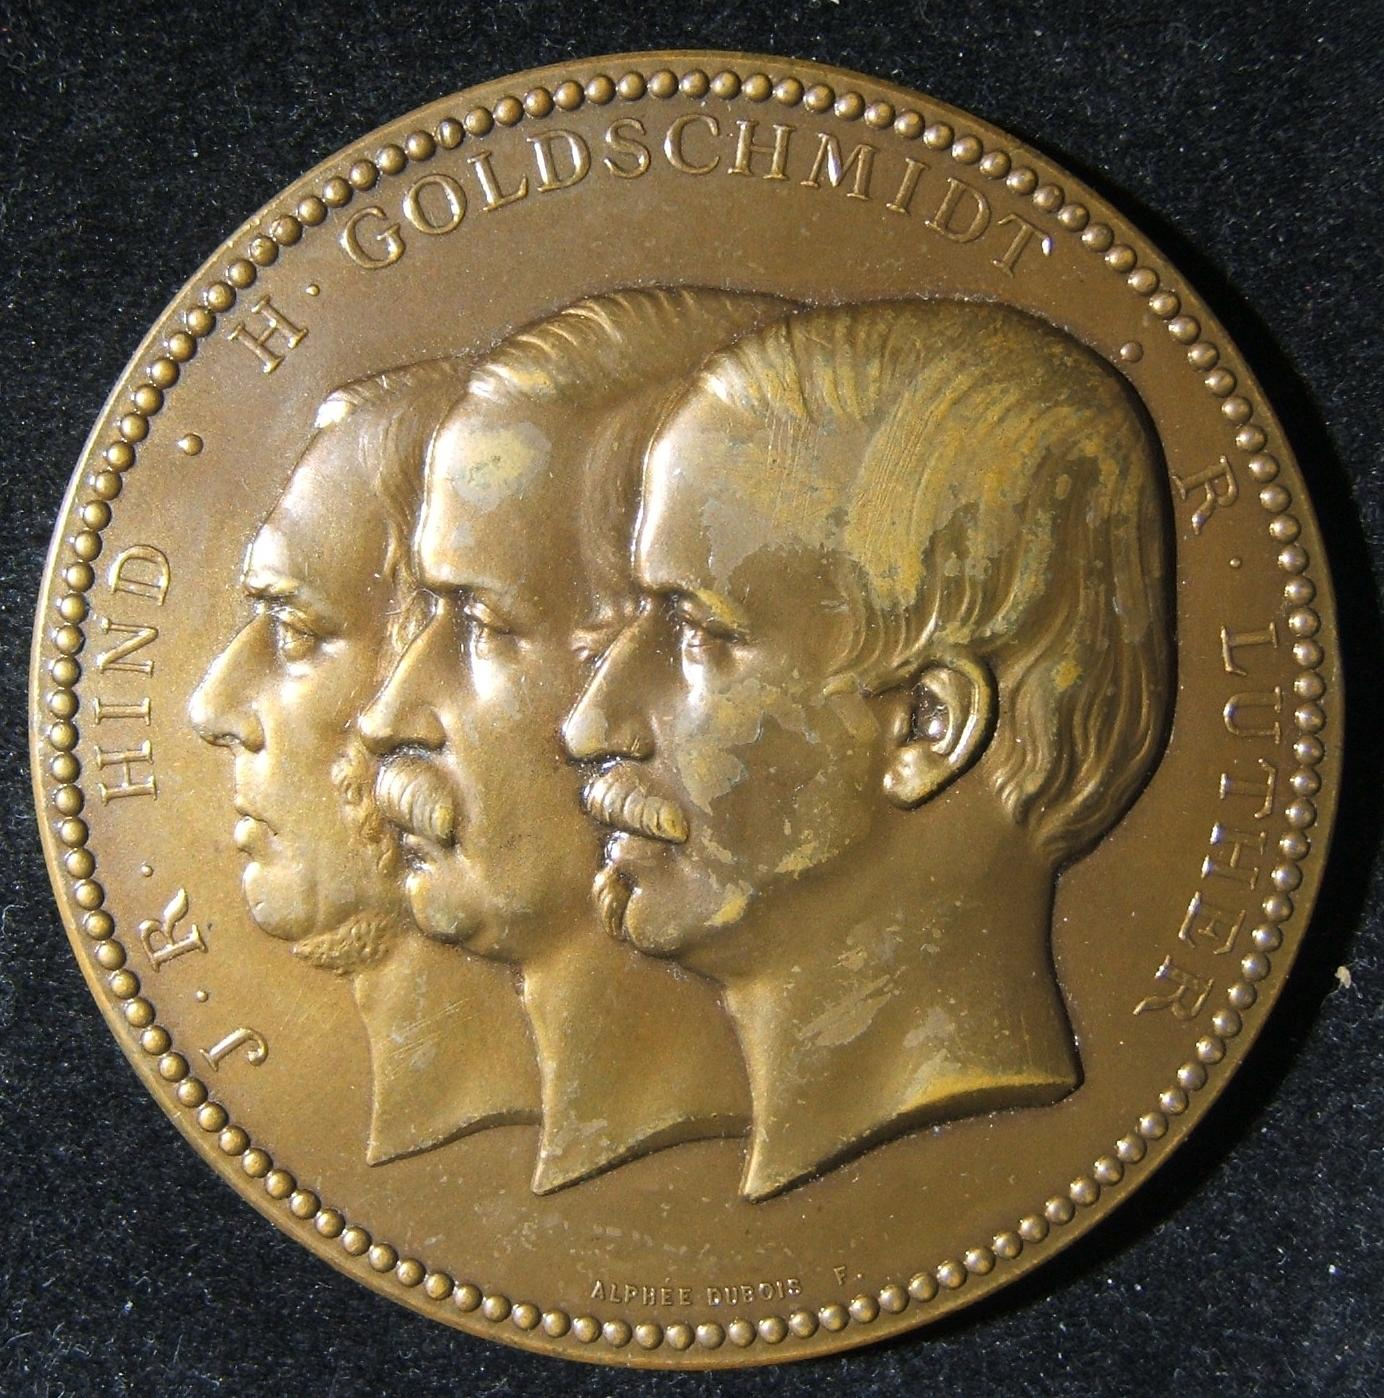 France: bronze medal commemorating the 100th Astroid discovered, featuring Jewish Franco-German astronomer Hermann Mayer Salomon Goldschmidt, 1868; by Alph�e Dubois; size: 69.25mm;